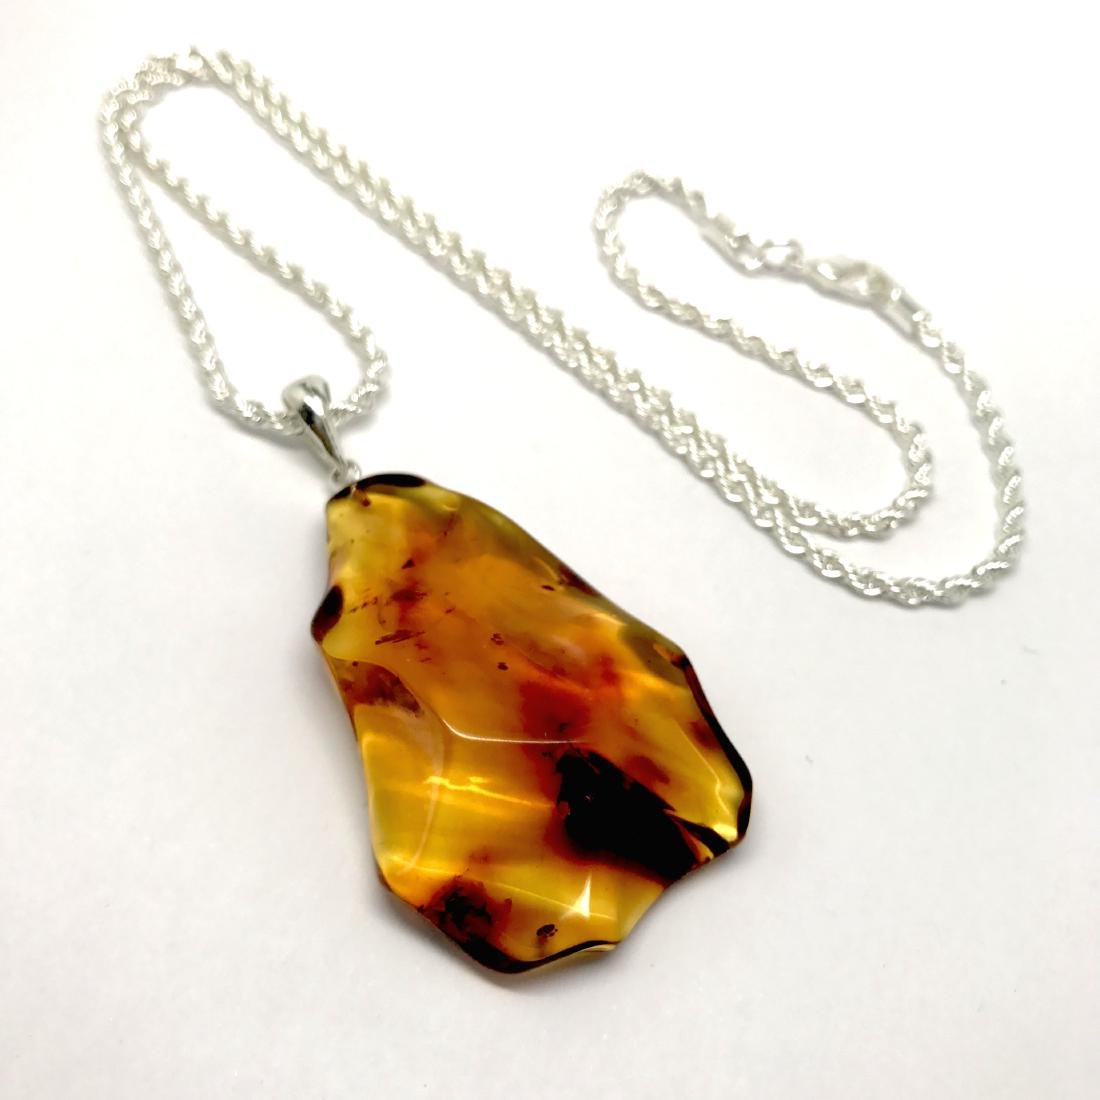 Vintage Baltic amber carved pendant 6x3cm silver 925 - 2